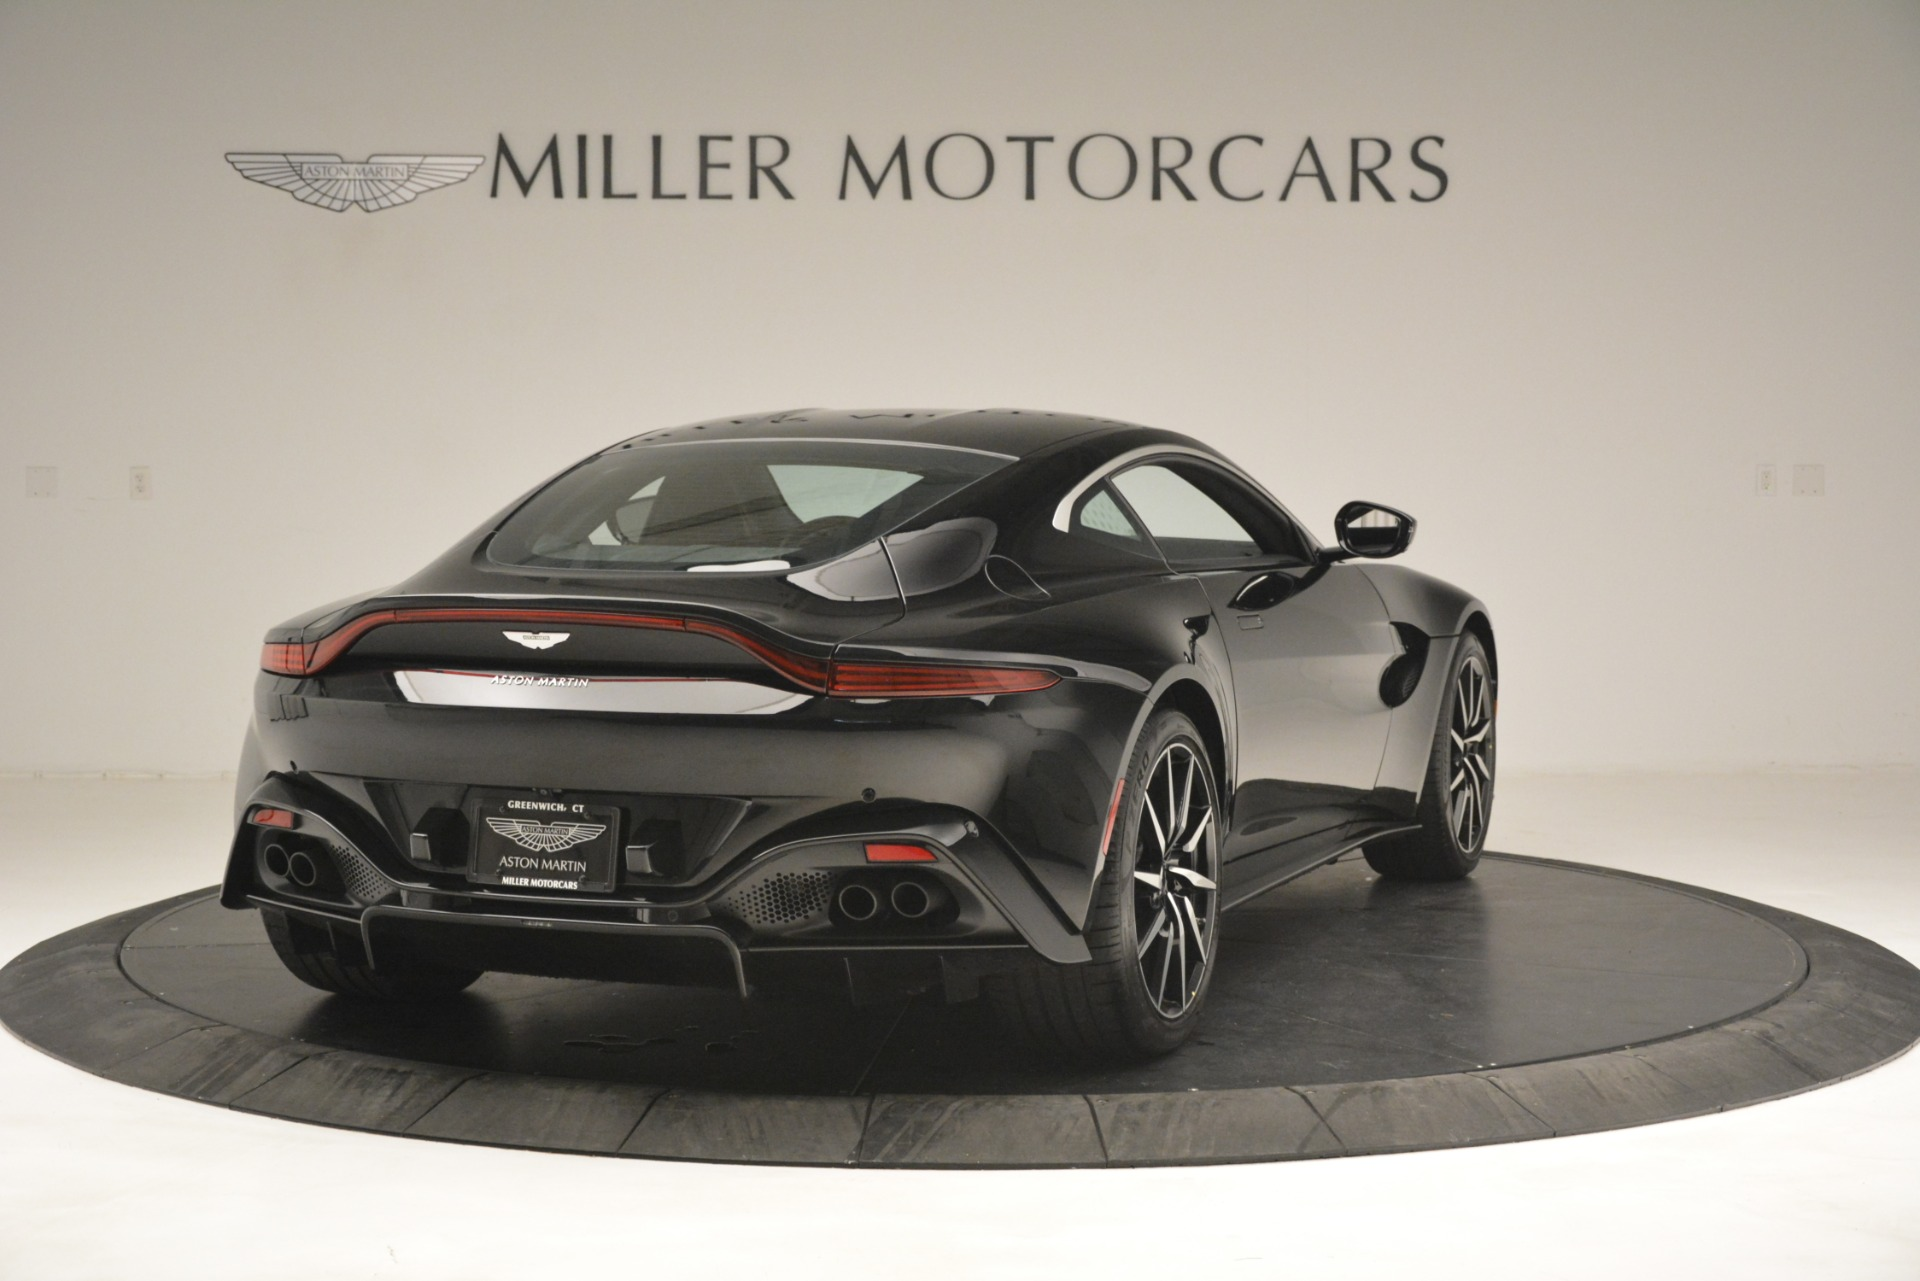 New 2019 Aston Martin Vantage V8 For Sale In Westport, CT 3124_p7